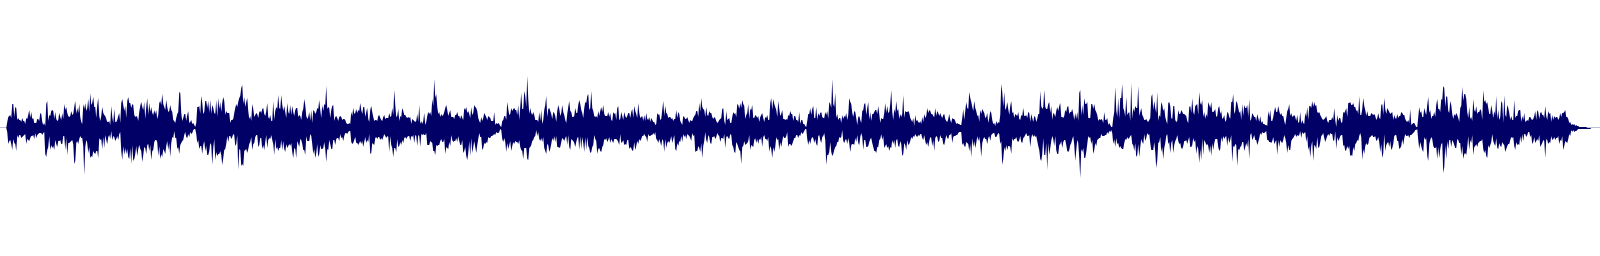 waveform of track #137291